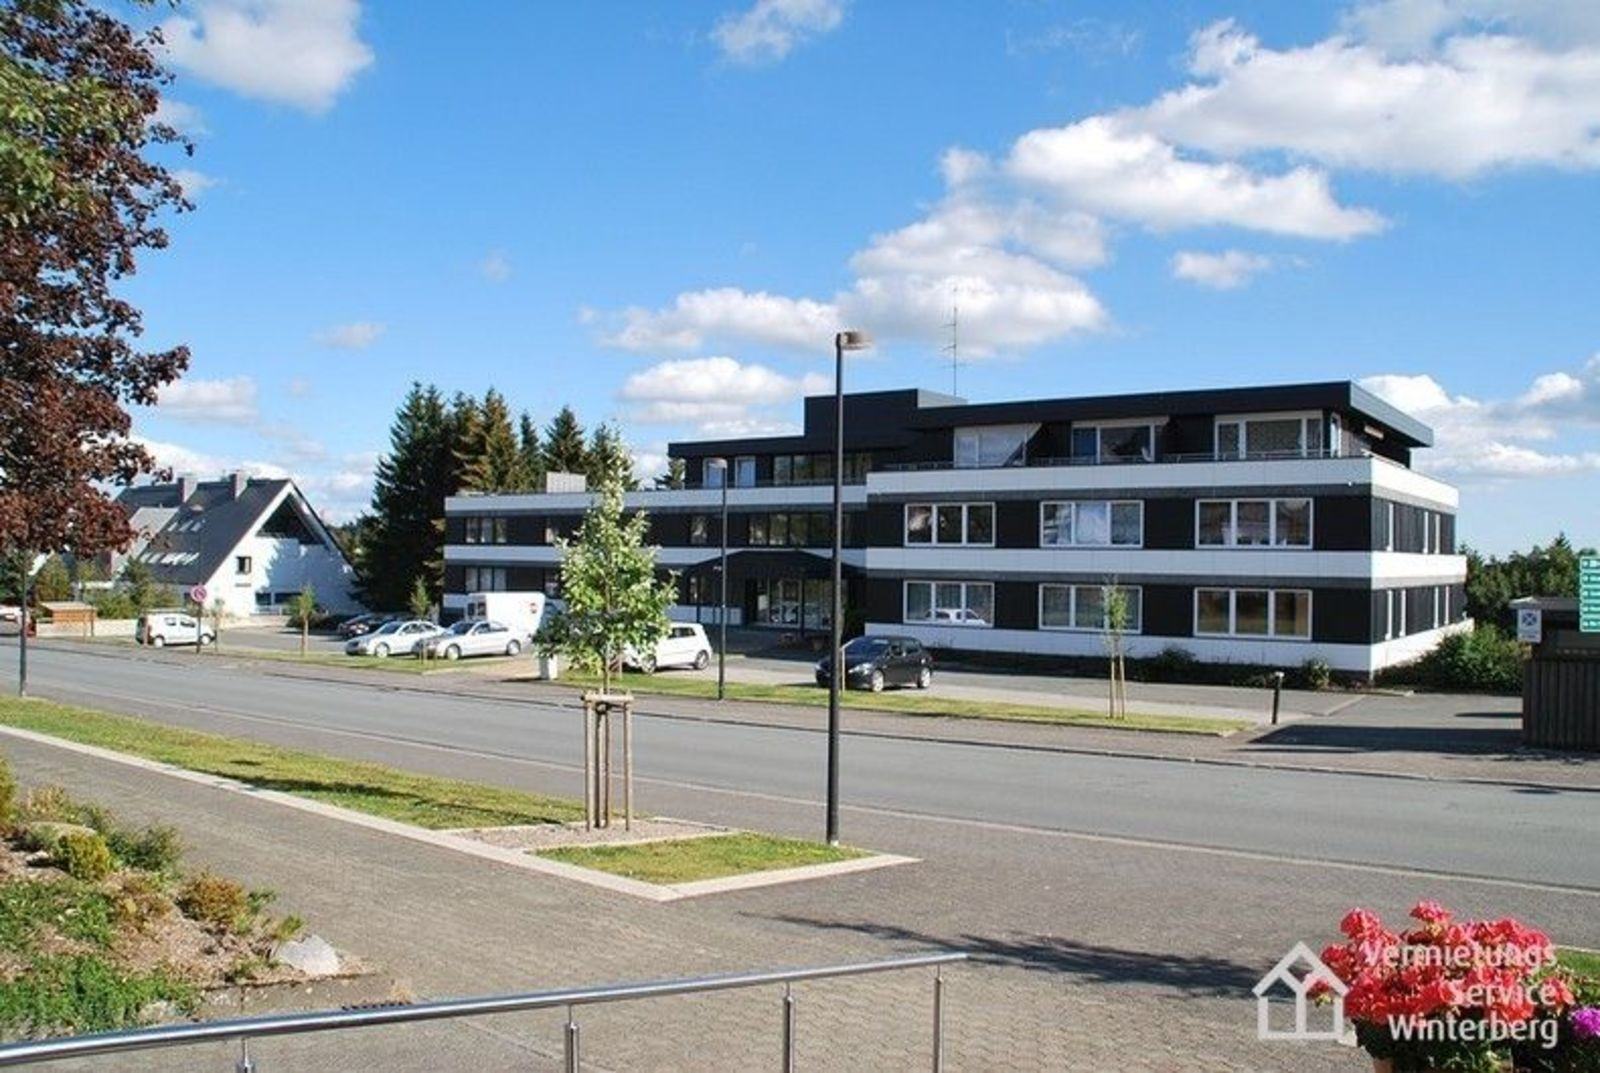 Appartement - Am Waltenberg 70-KO | Winterberg